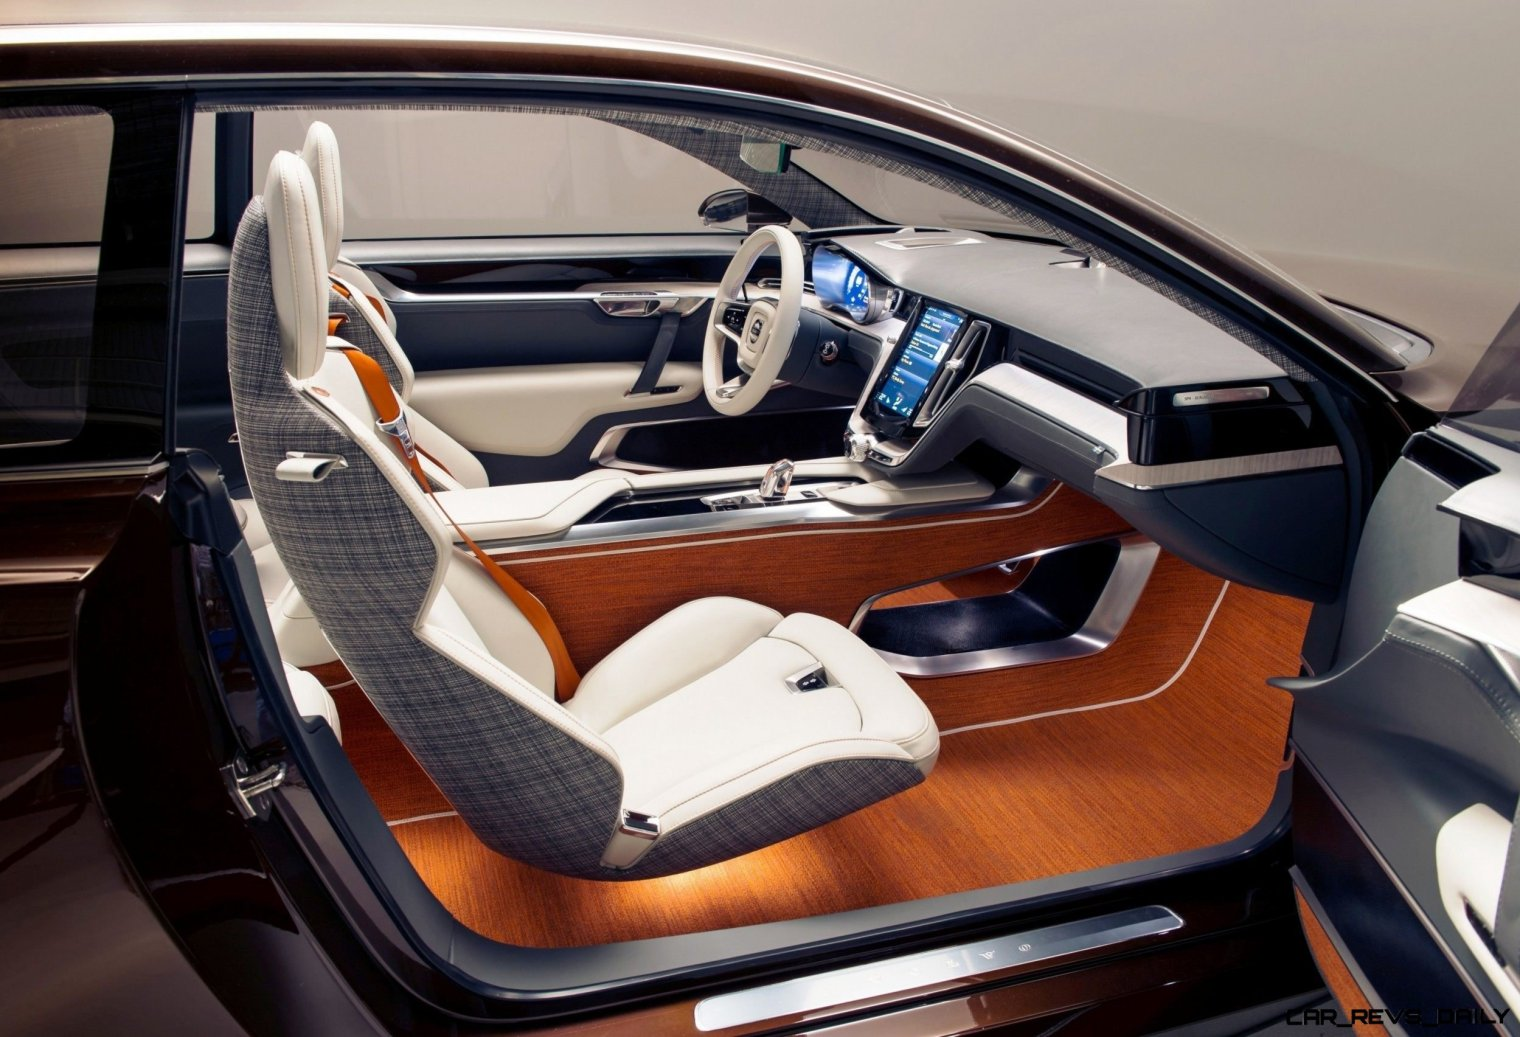 Concept Estate Confirms It! Volvo's New Design Lead Th. Ingenlath Should Be Sweden's Man of the Year 16